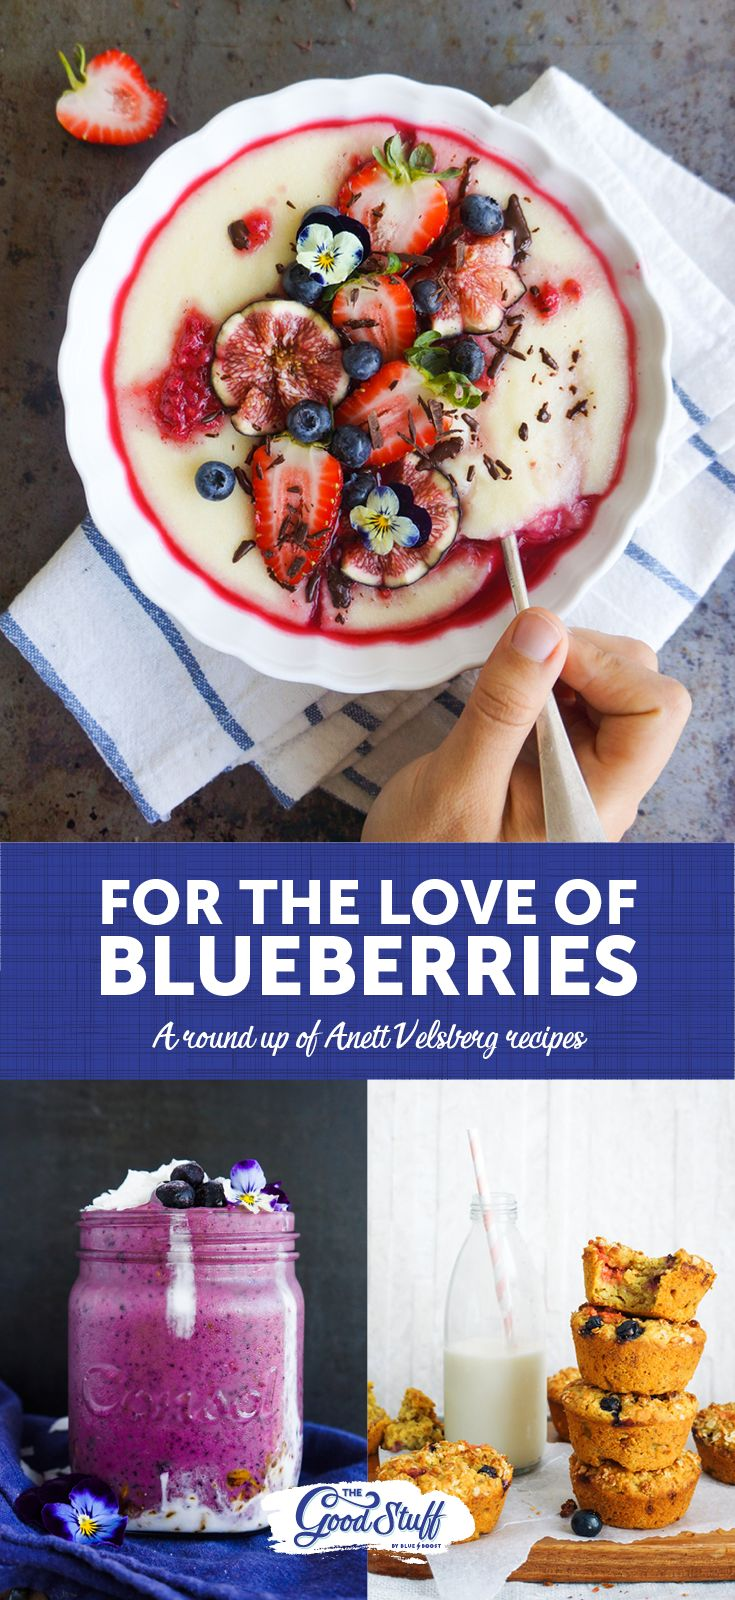 We LOVE blueberries and we love it even more when the little blueberry is used to create something even MORE delicious... as if that's possible.   Check out this round-up of delicious, vegan-friendly recipes by the talented Anett Velsberg.   WARNING: Serious food porn ahead!  #Blueberry #recipe #anettvelsberg #foodporn #goodforyou #Vegan #TheGoodStuff #BlueboostSA